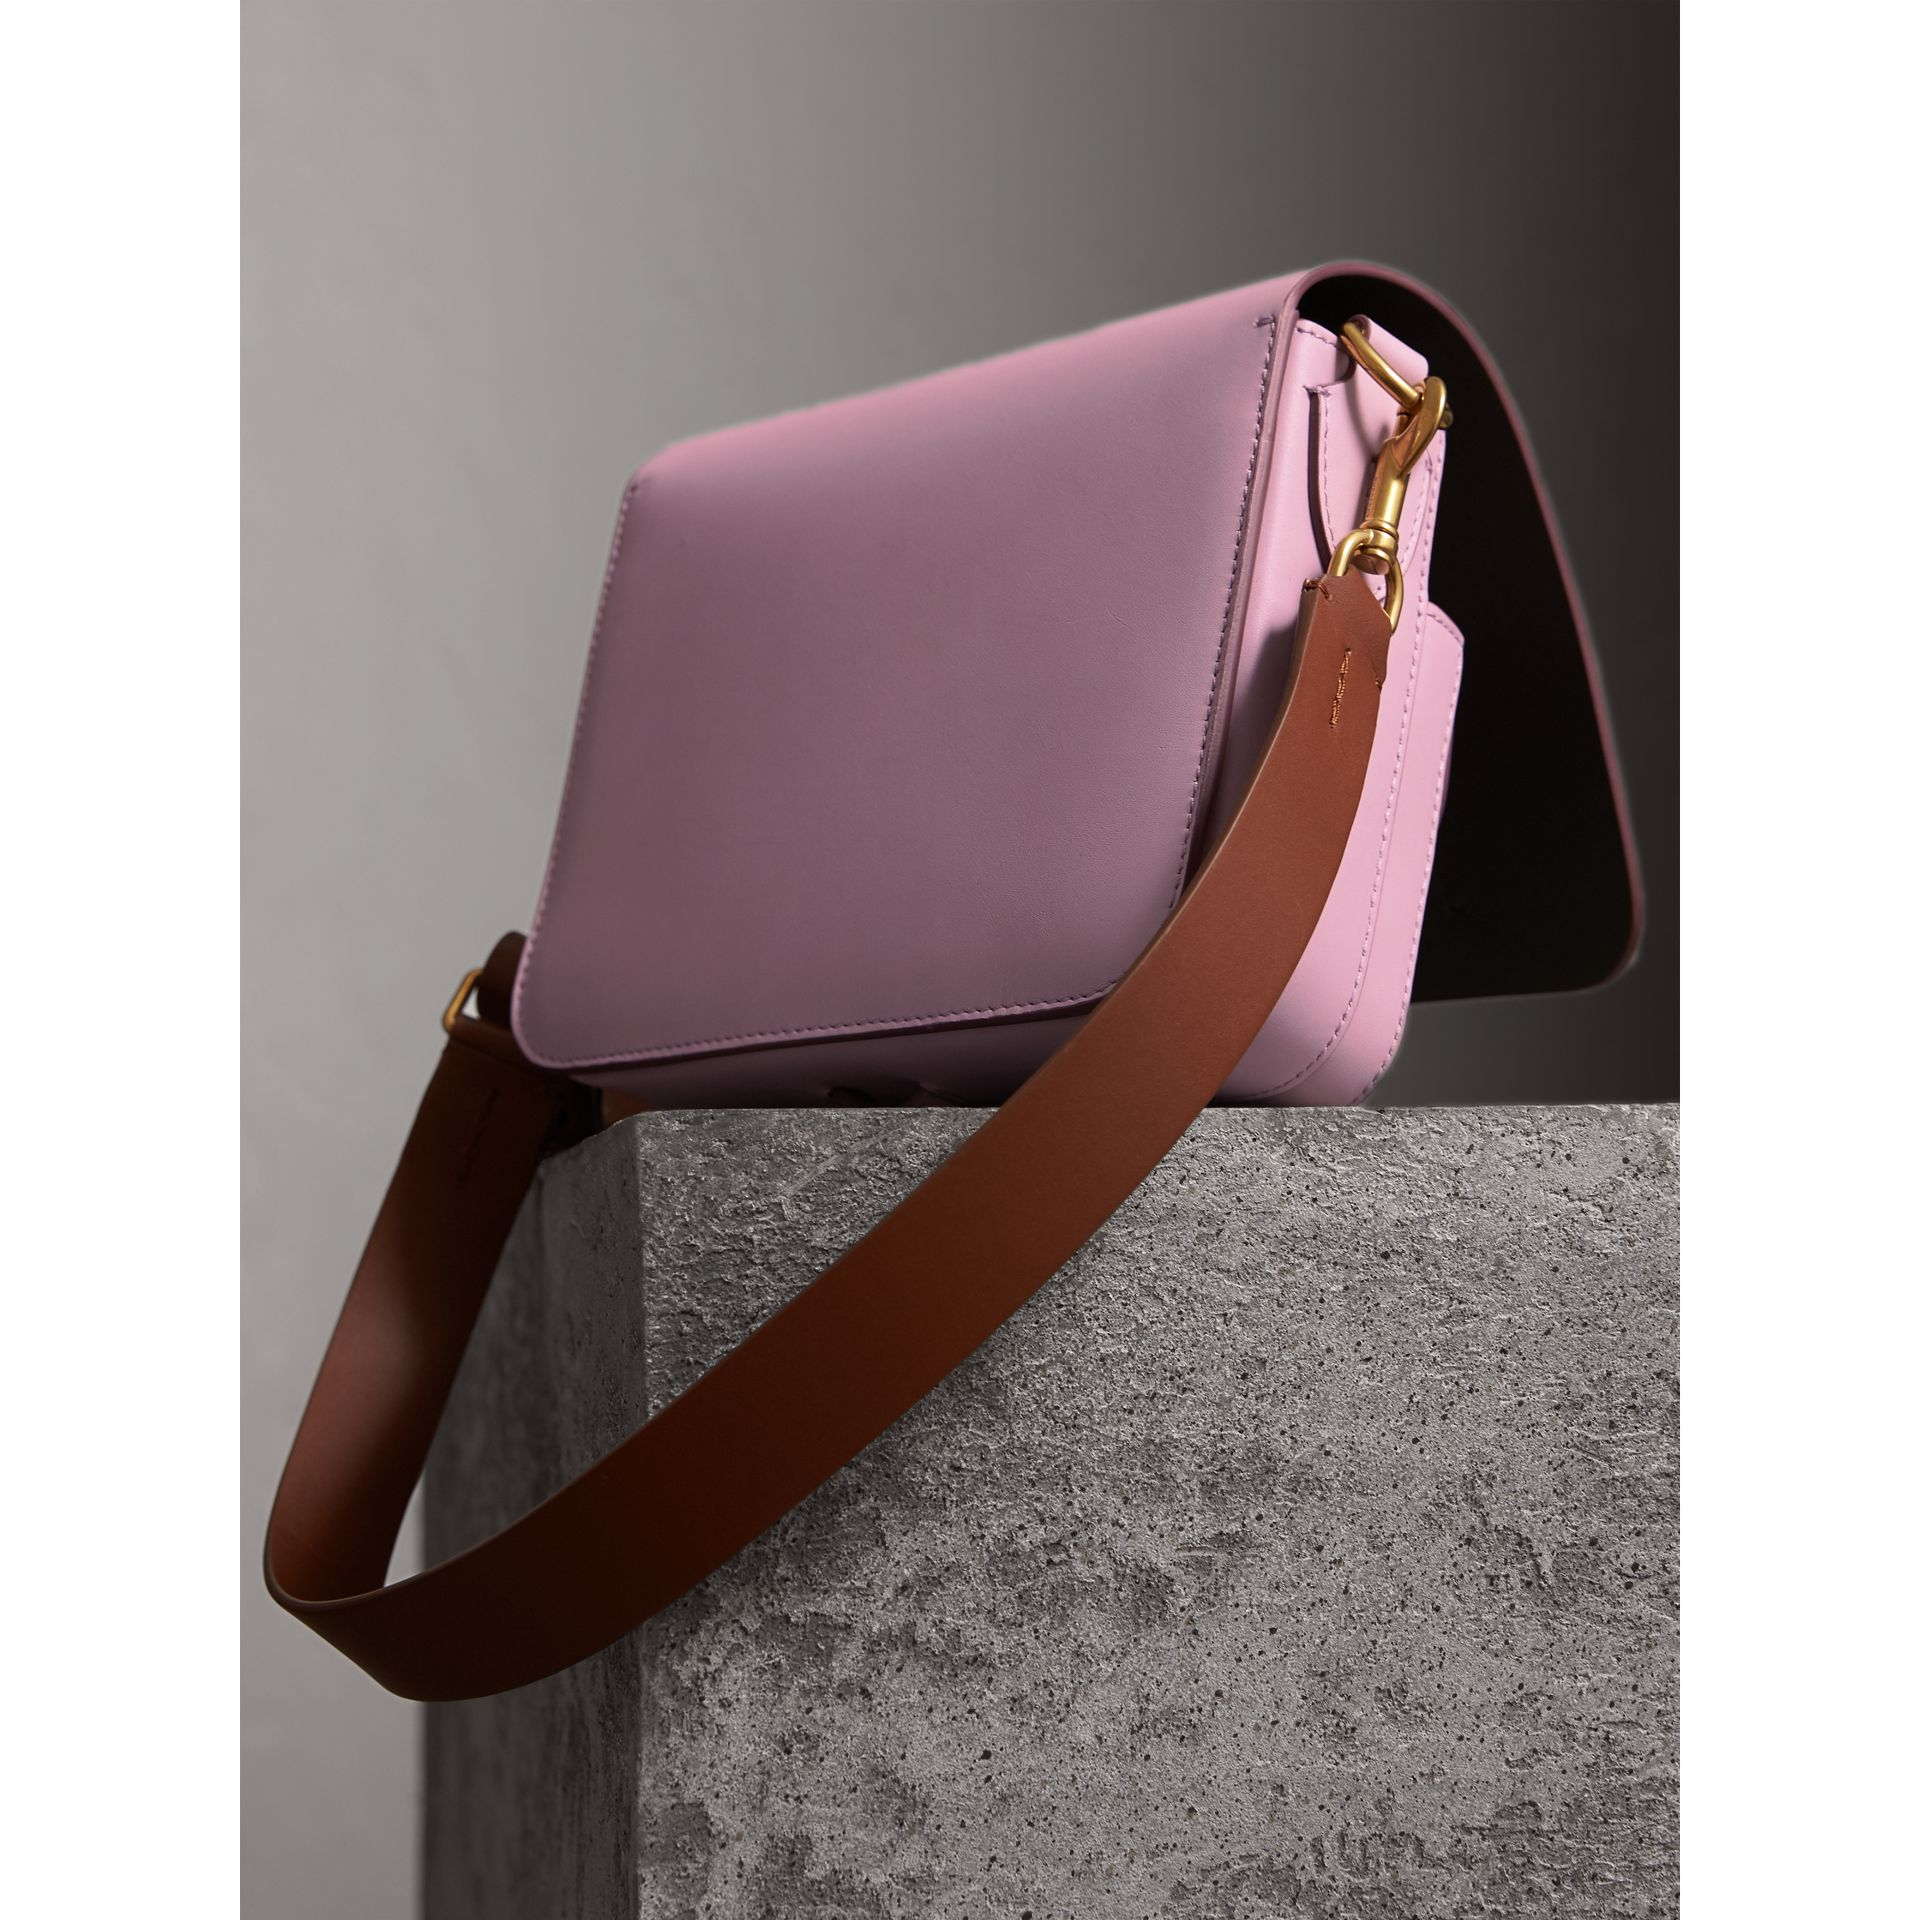 The Square Satchel in Leather in Pale Lavender - Women | Burberry - gallery image 4